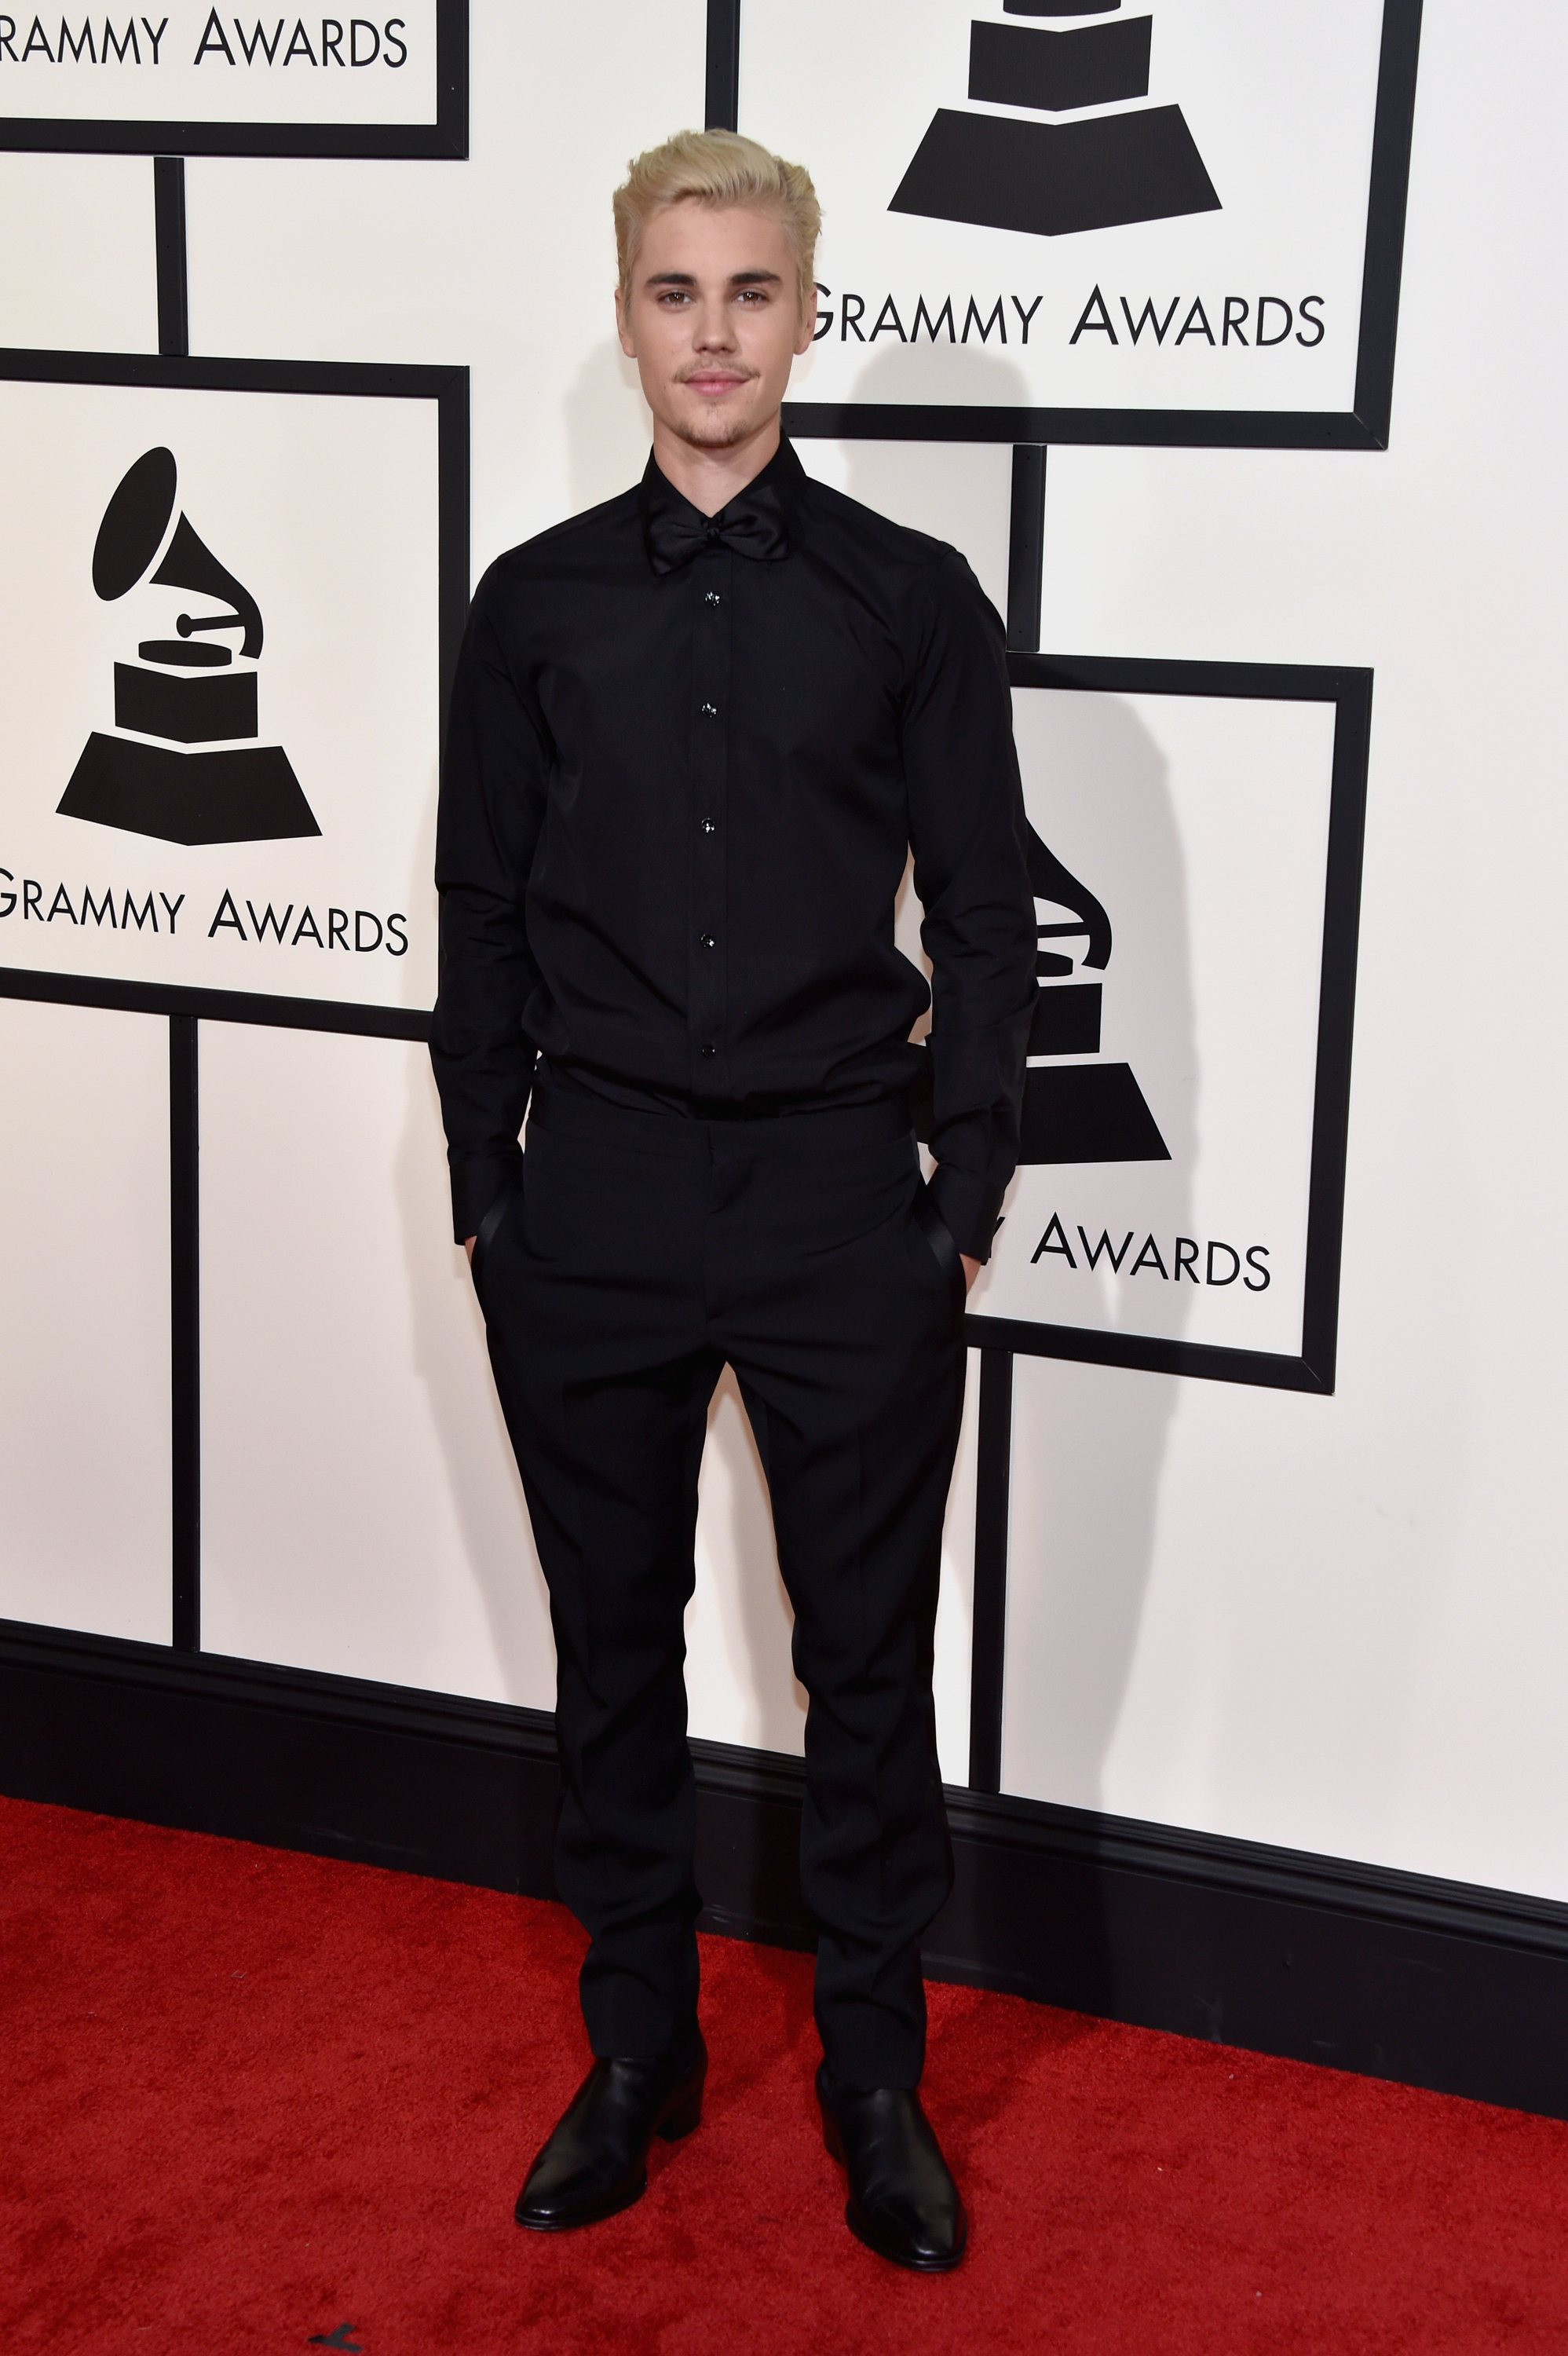 Justin Bieber attends the 58th GRAMMY Awards at Staples Center on Feb. 15, 2016 in Los Angeles.